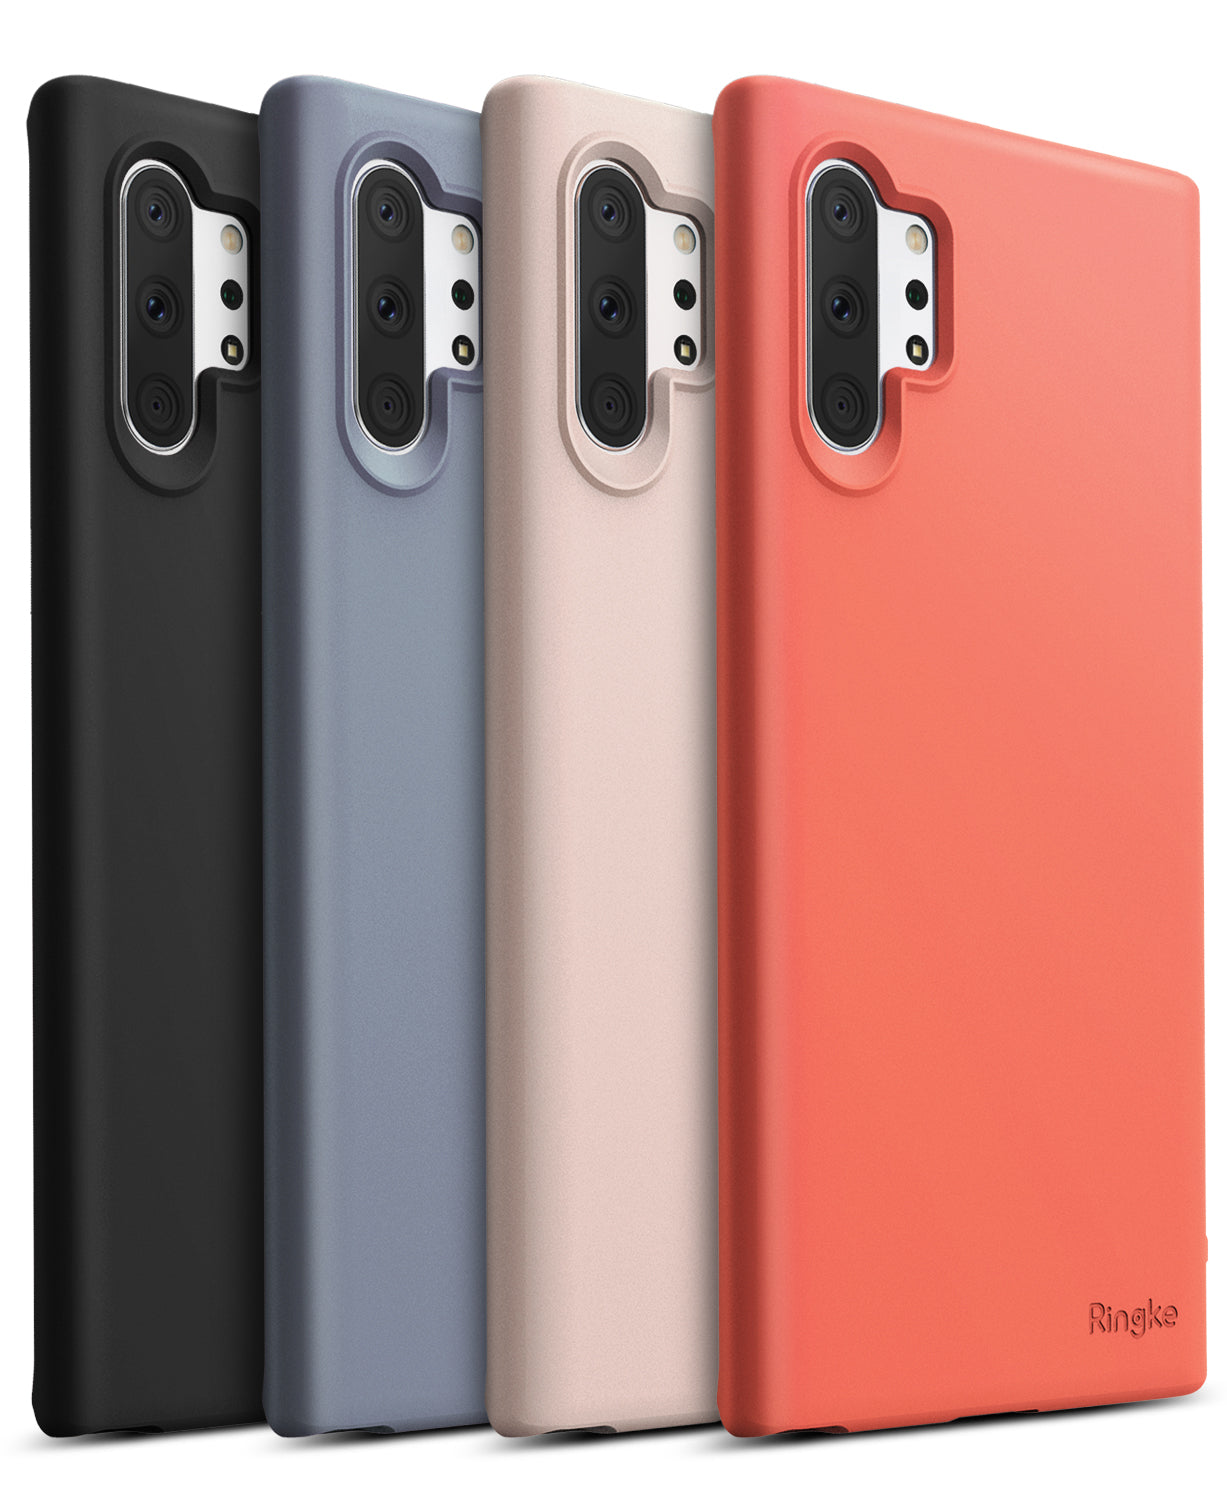 ringke air-s case for samsung galaxy note 10 plus